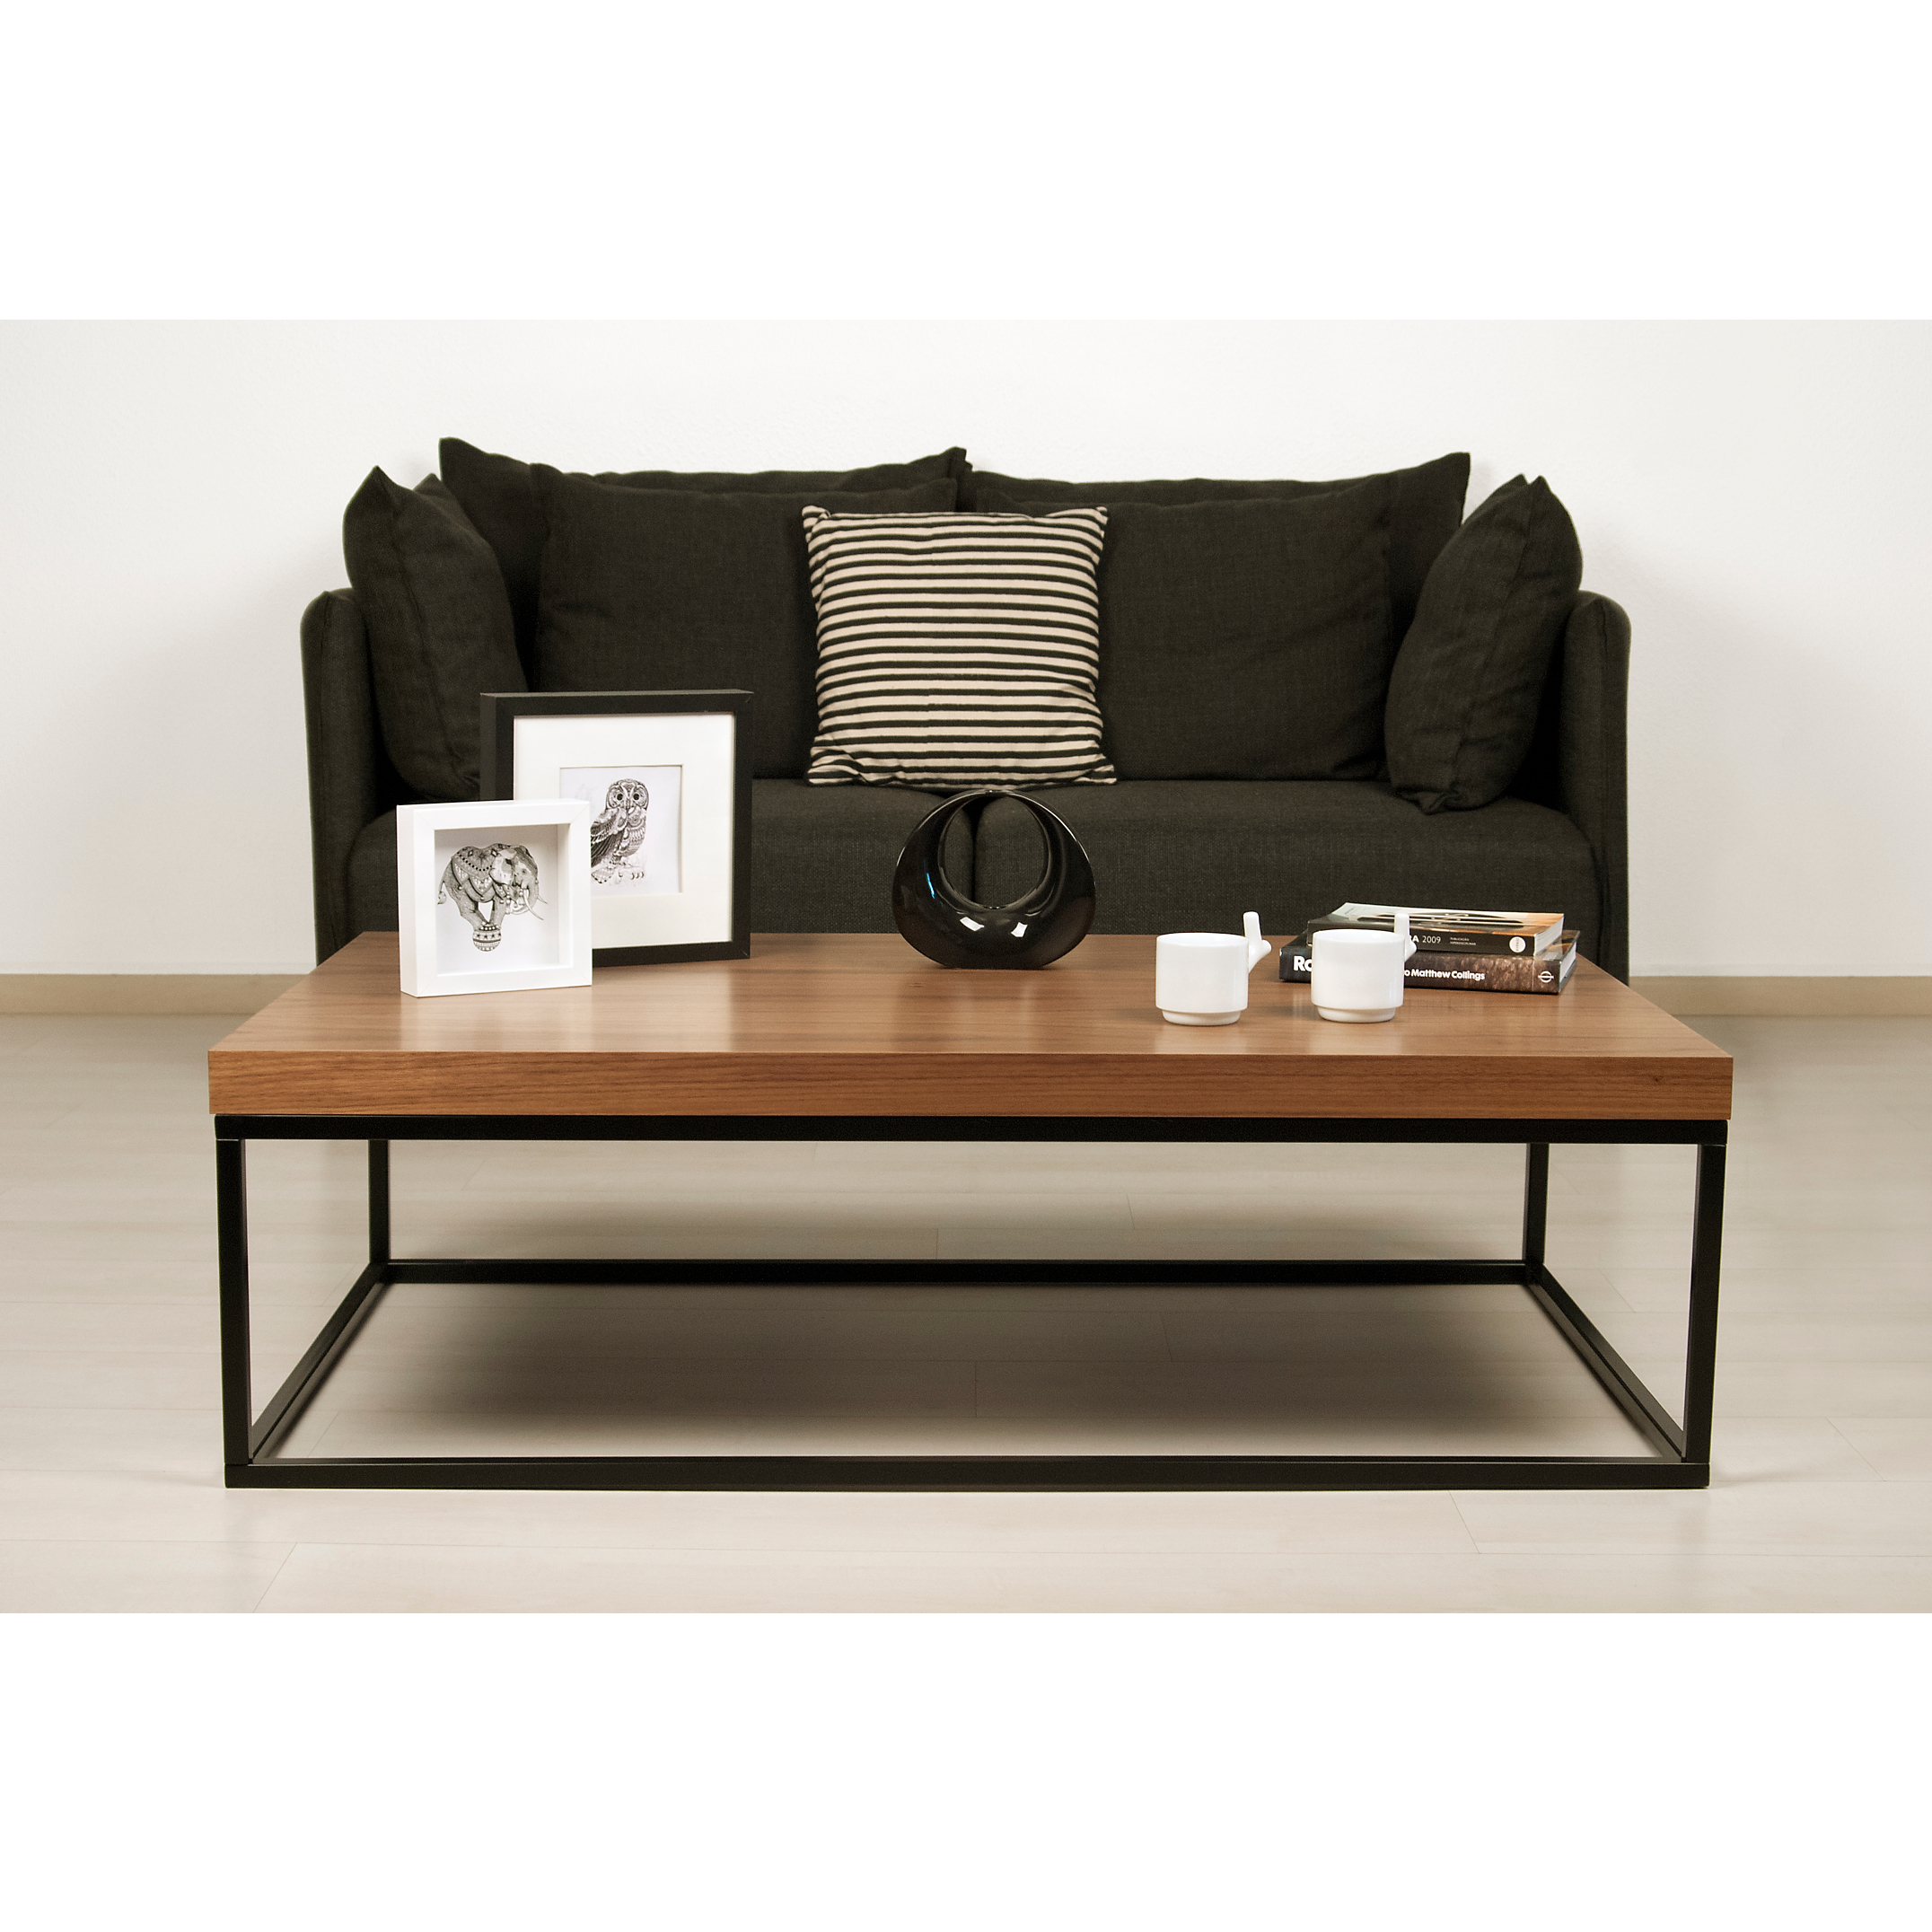 Table basse takao camif table basse camif ventes pas - Table camif ...